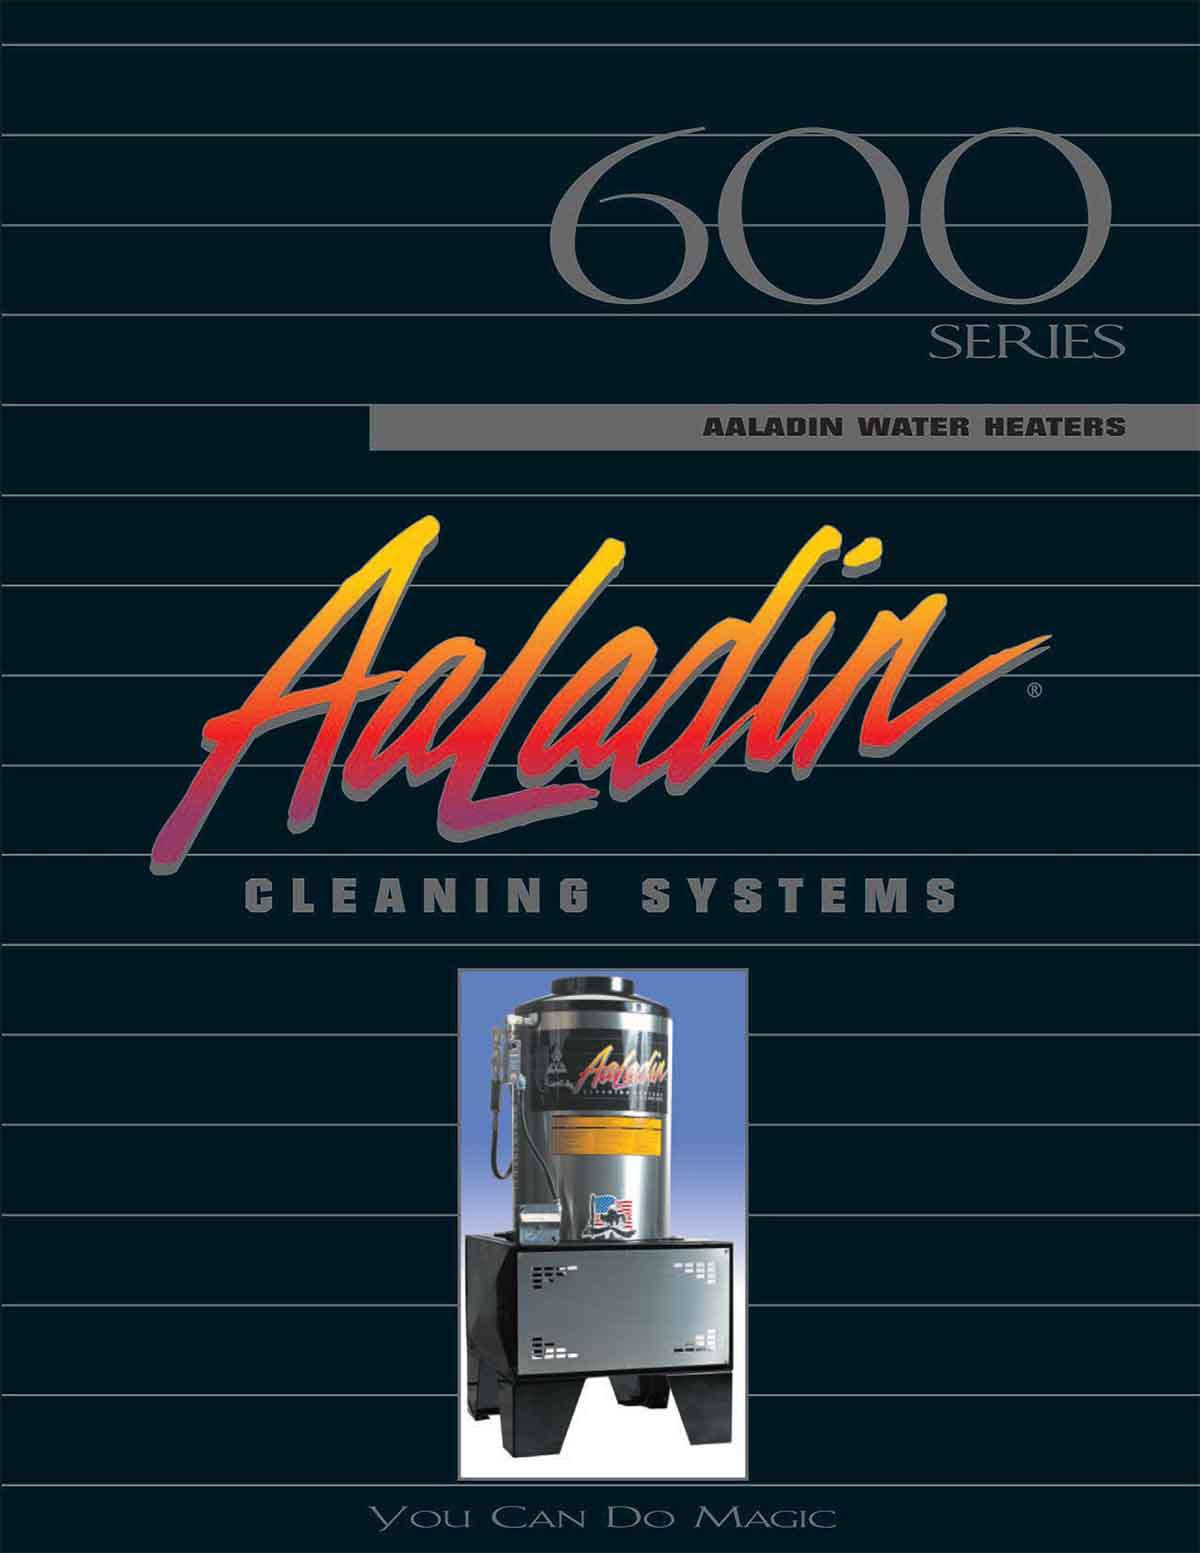 Aaladin 600 Series Cleaning Systems